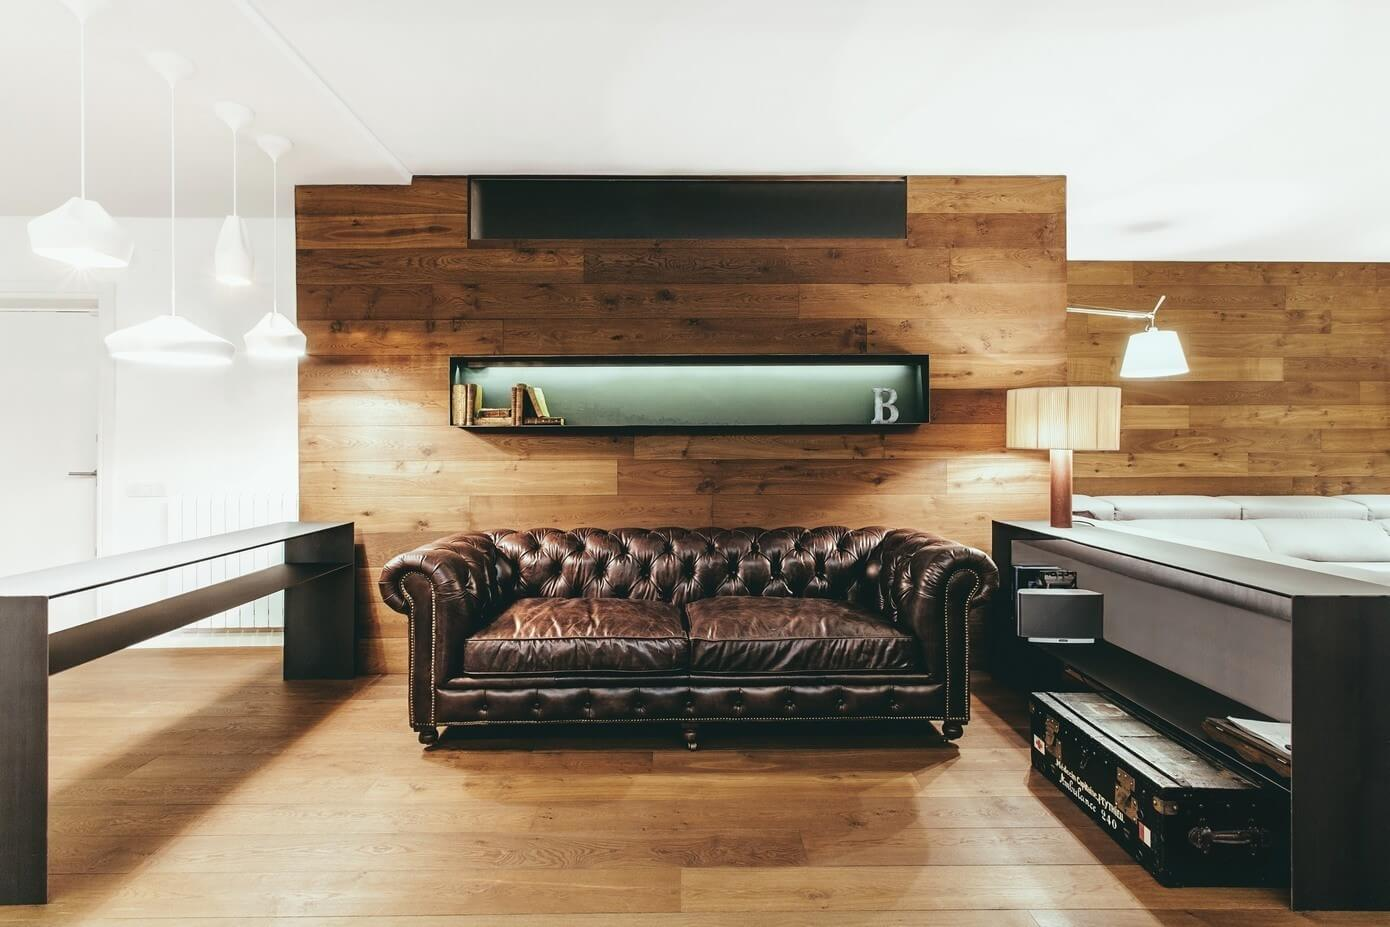 AB Apartment by Dom Arquitectura